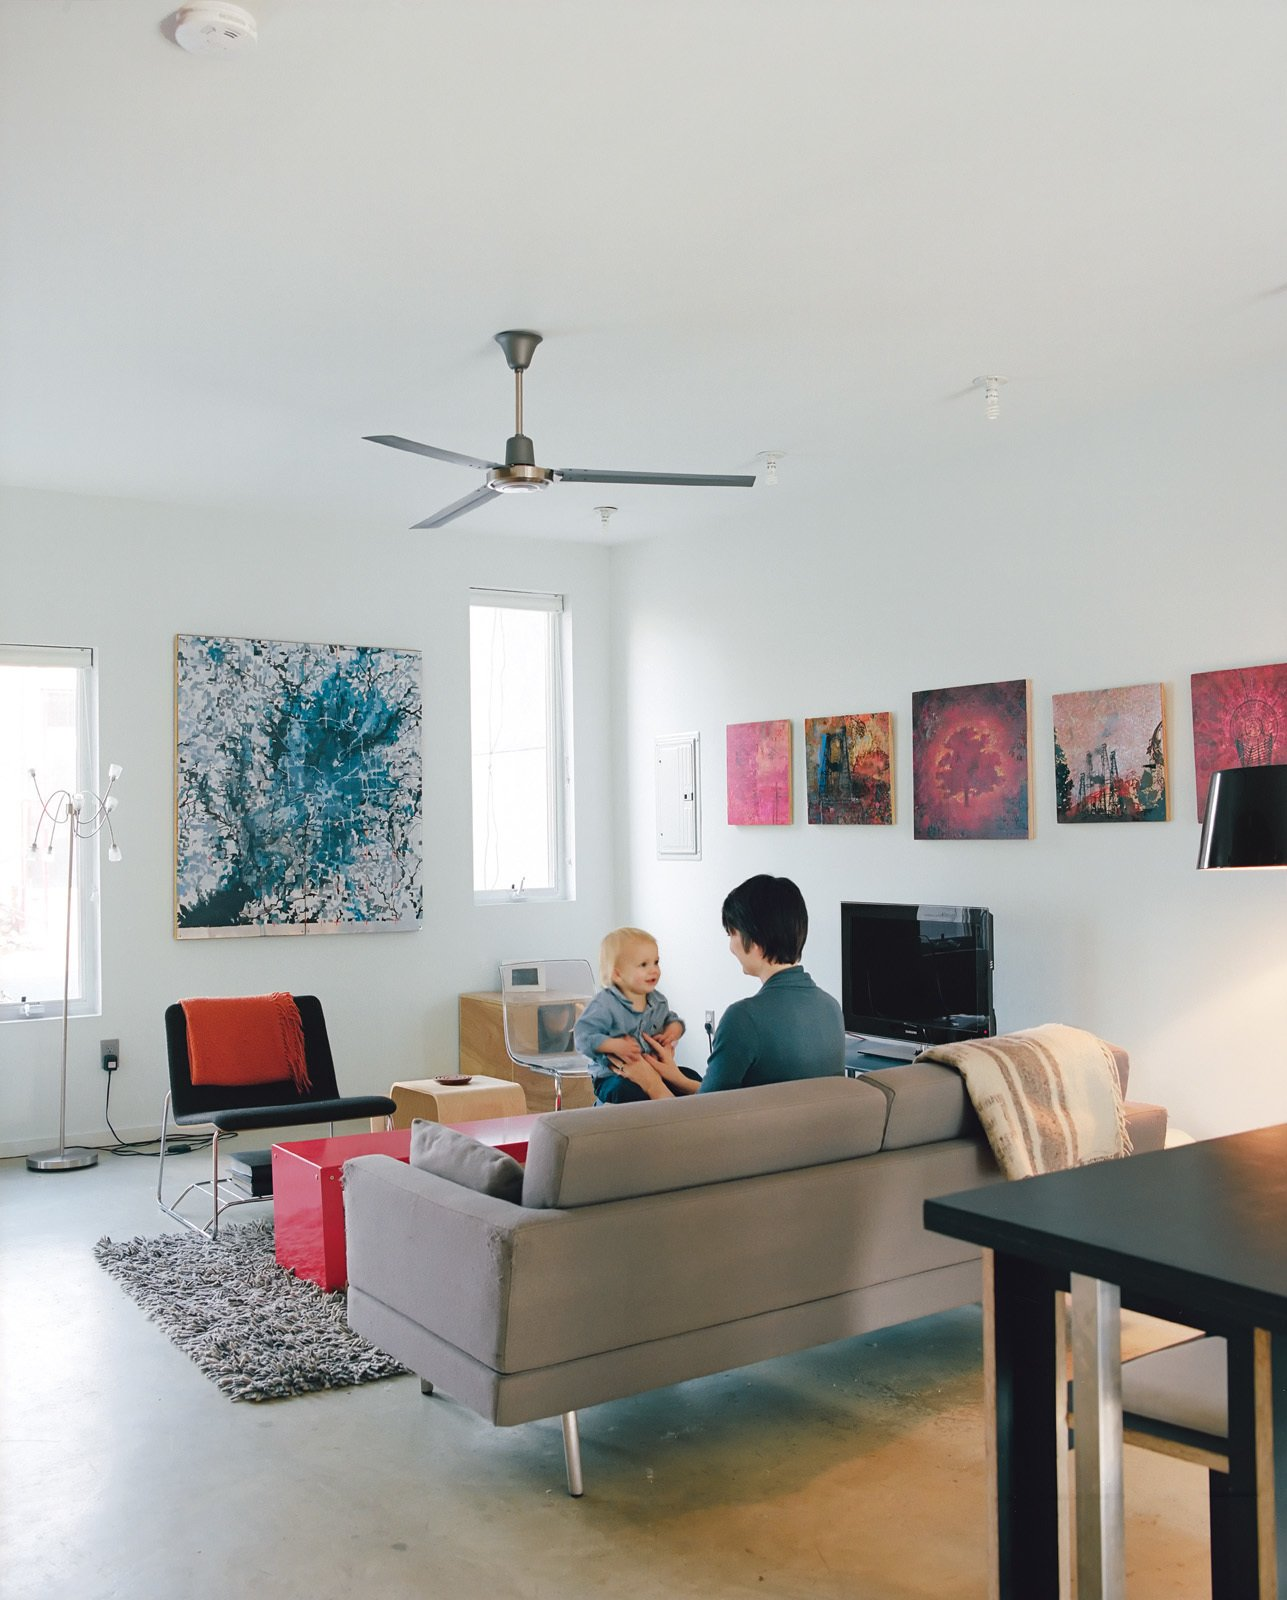 Courtney and Teague play in the living room opposite a Perch lounge designed by Eric Pfeiffer for Offi. The paintings behind the TV are by artist Chris Clark.  Blu Dot Spotted by Blu Dot from Green Urban Housing in Philadelphia